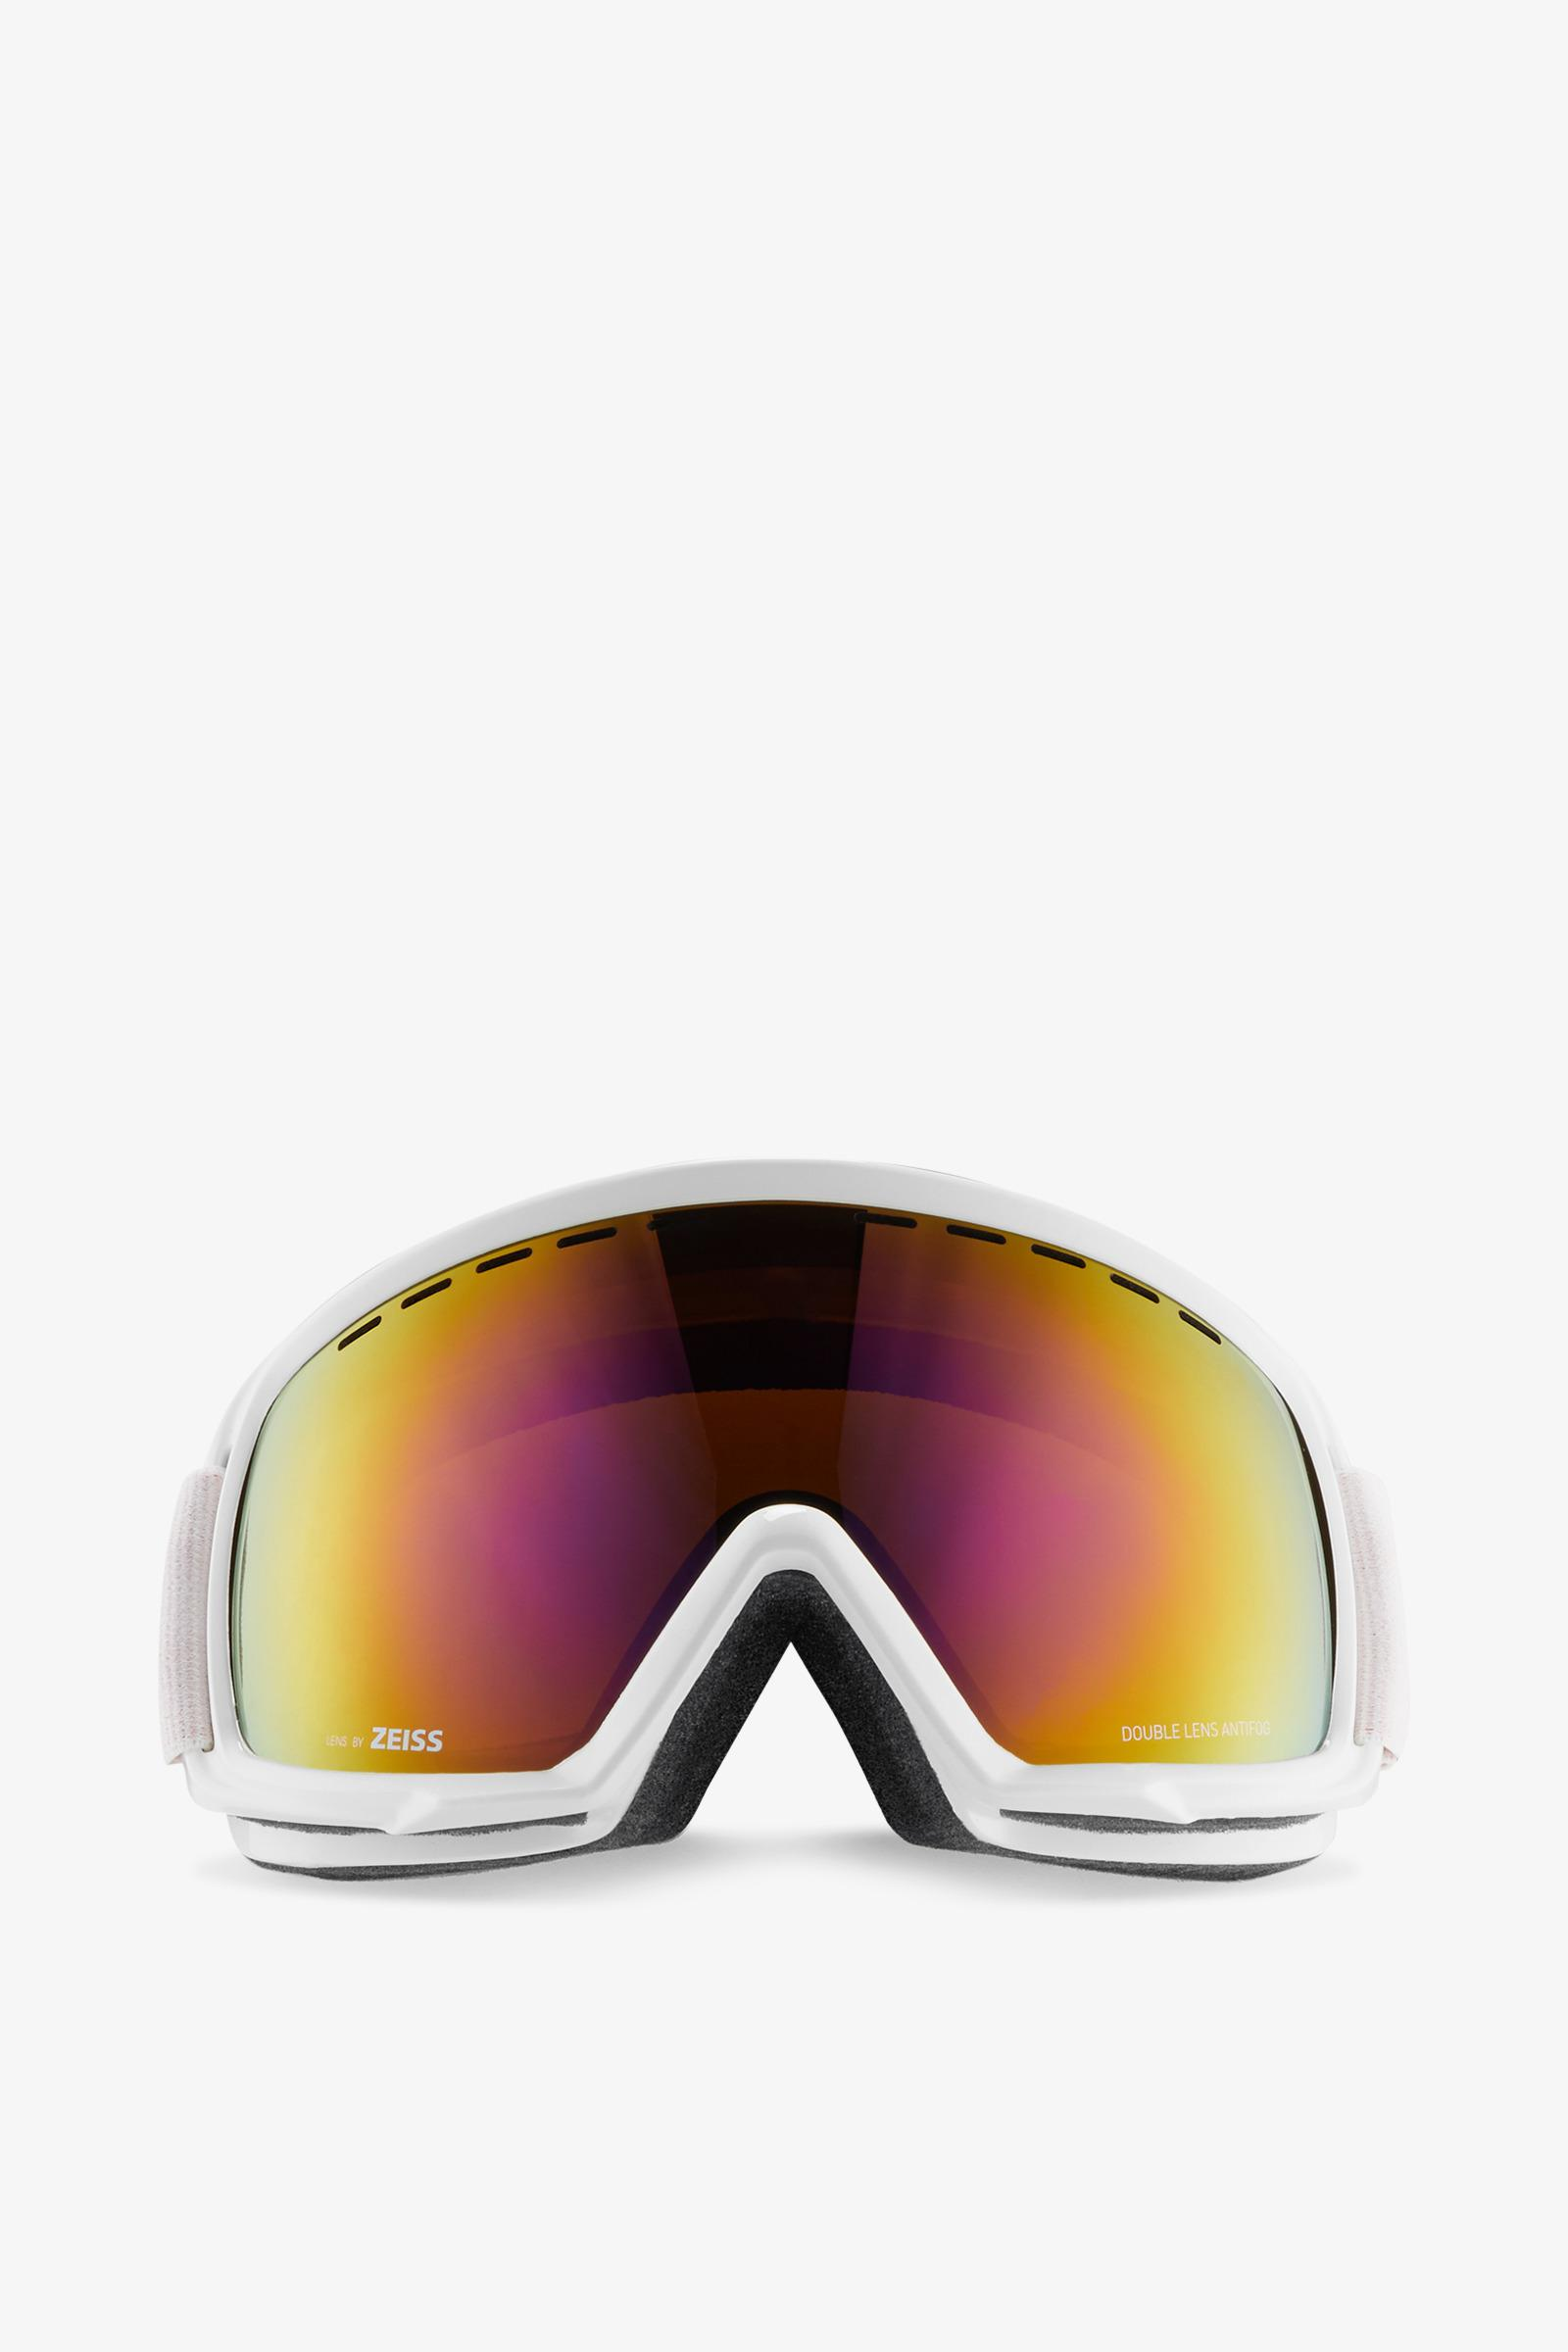 7633db656f9 Lyst - Bogner Fire+ice Ski goggles In White red in Red